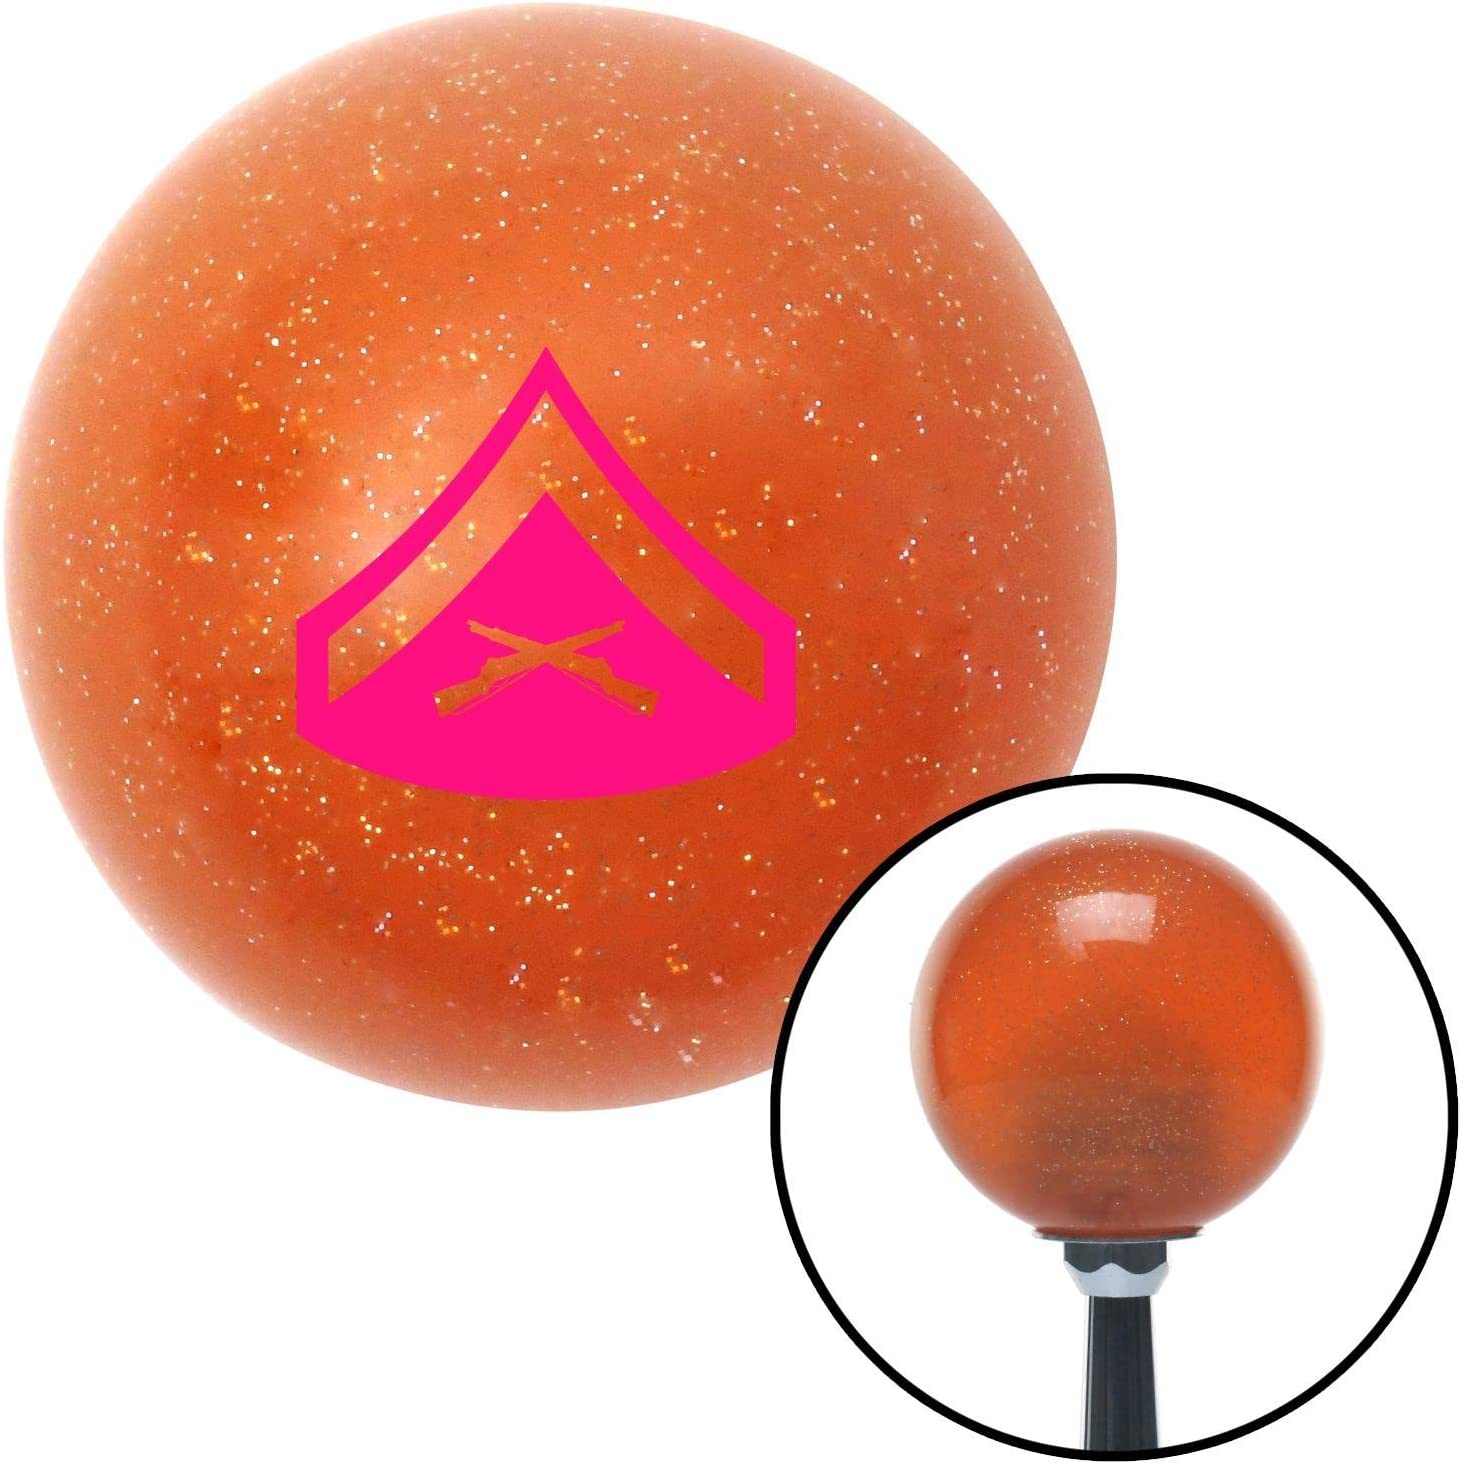 Yellow 01 Private First Class American Shifter 44564 Orange Metal Flake Shift Knob with 16mm x 1.5 Insert